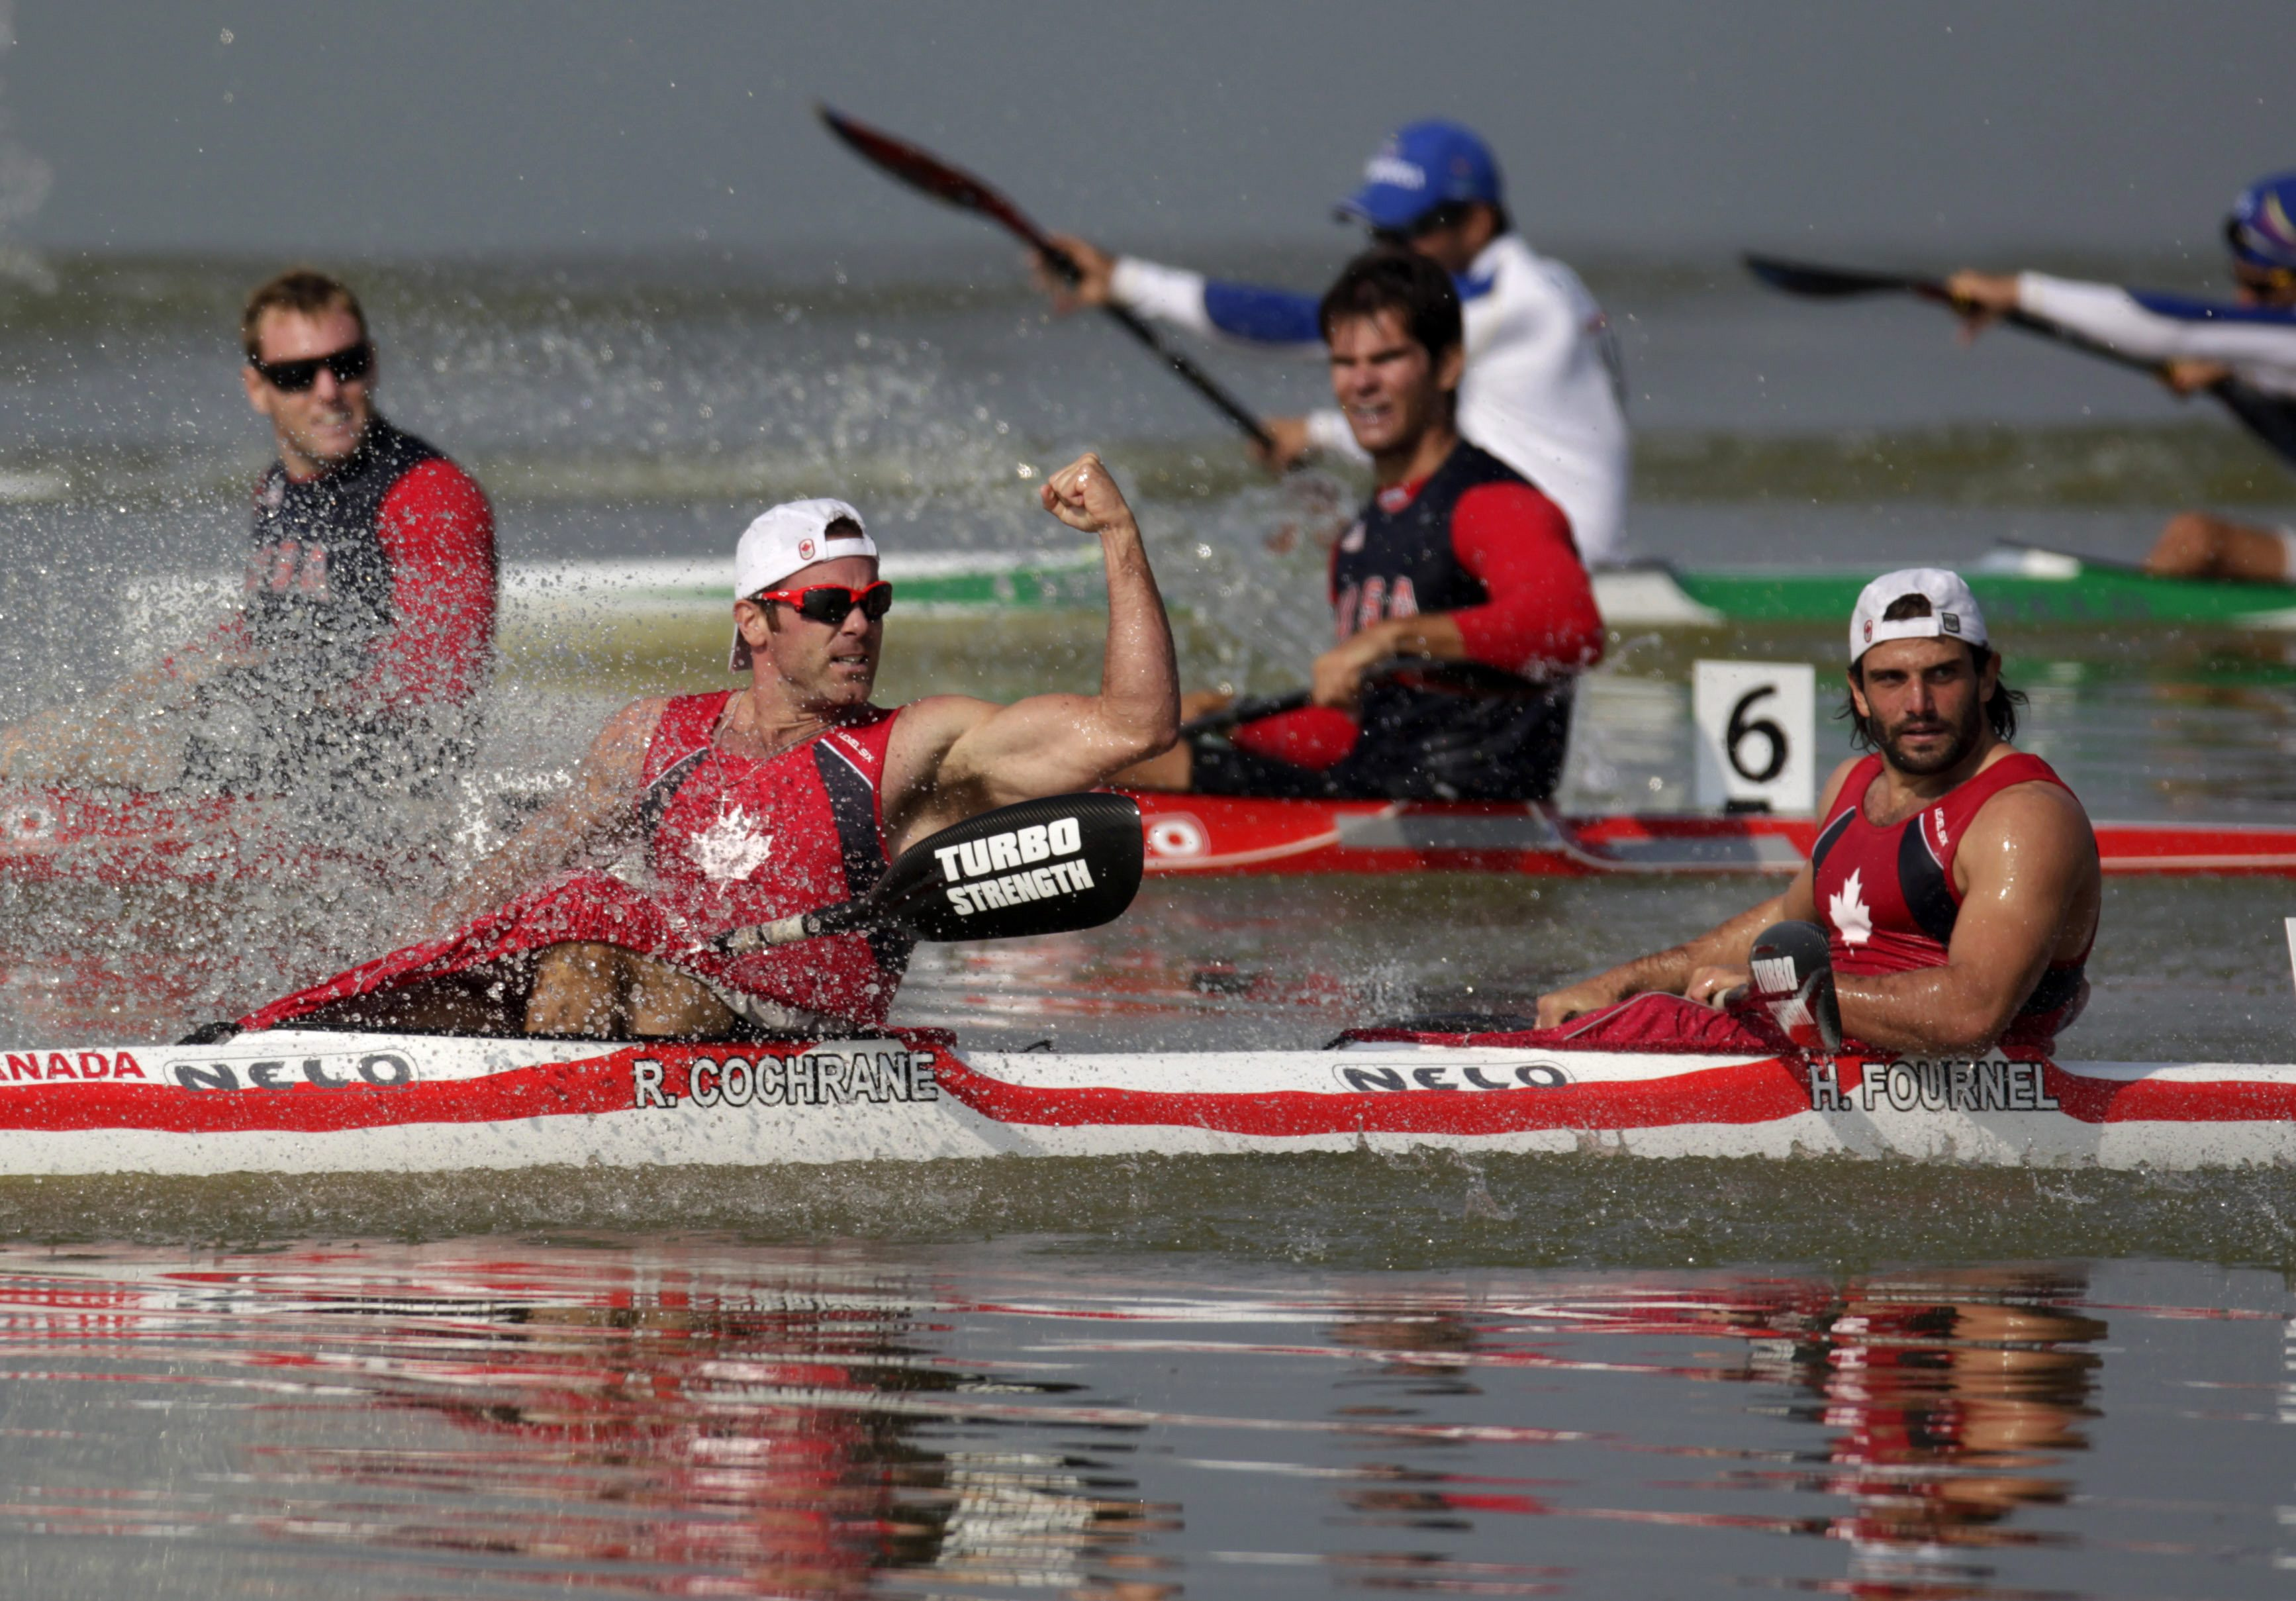 Gold medal winners Paul Cochrane, left, and Hugues Fournel from Canada cross the finish line as they win the men's double K2 200m kayak event at the Pan American Games in Ciudad Guzman, Mexico, Saturday Oct. 29, 2011. (AP Photo/Eduardo Verdugo)